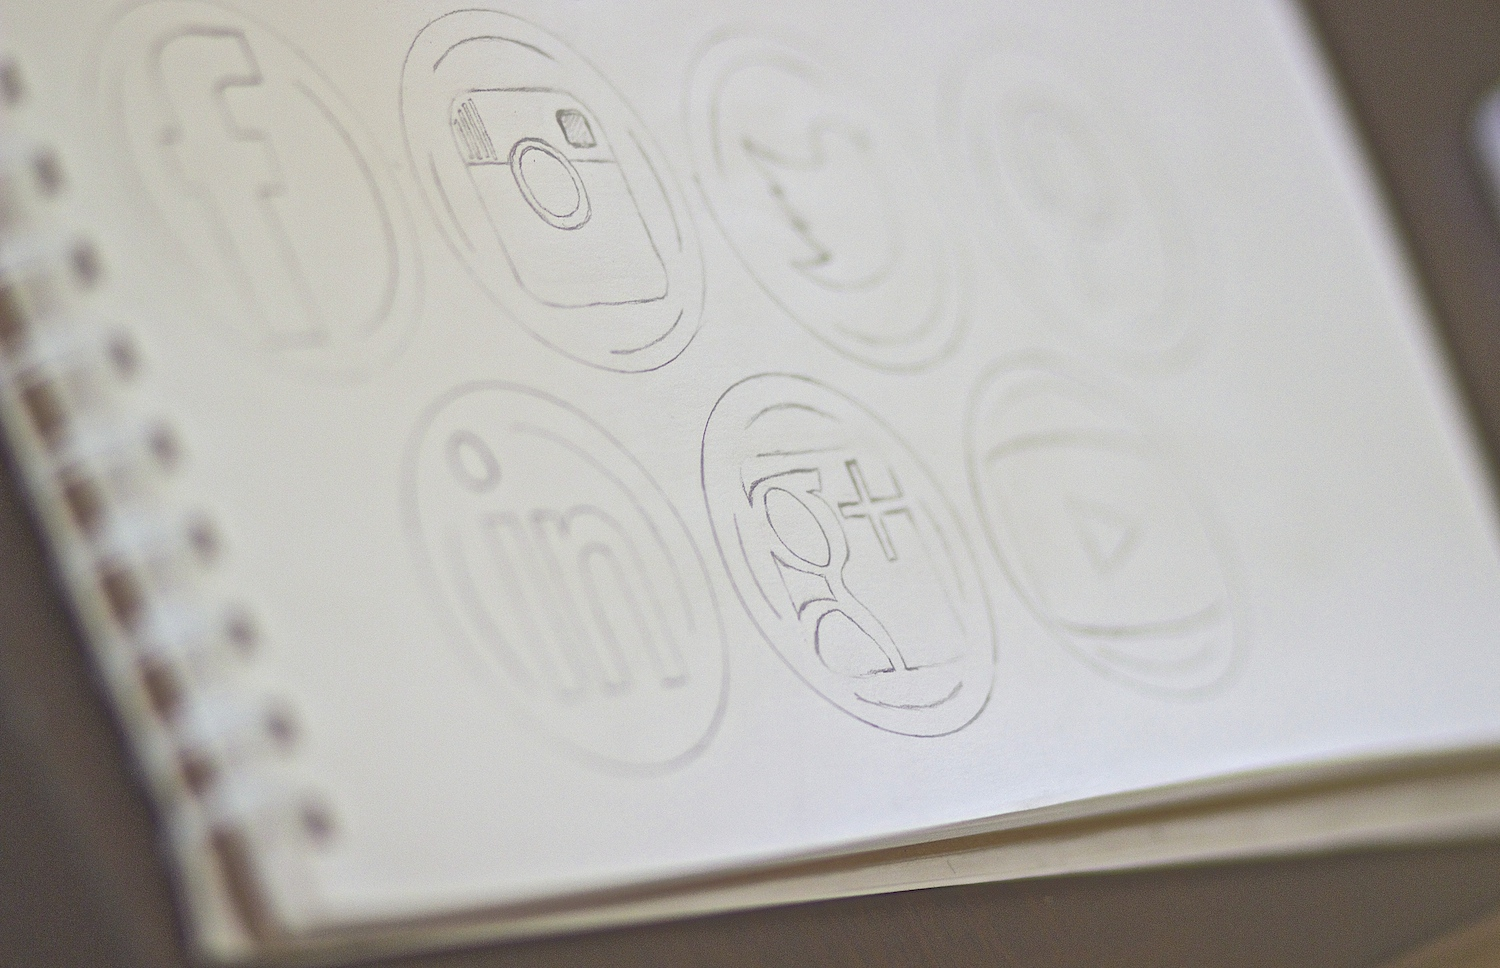 sketch-artist-for-hire-for-social-media-typography-and-custom-drawn-designs-in-arizona